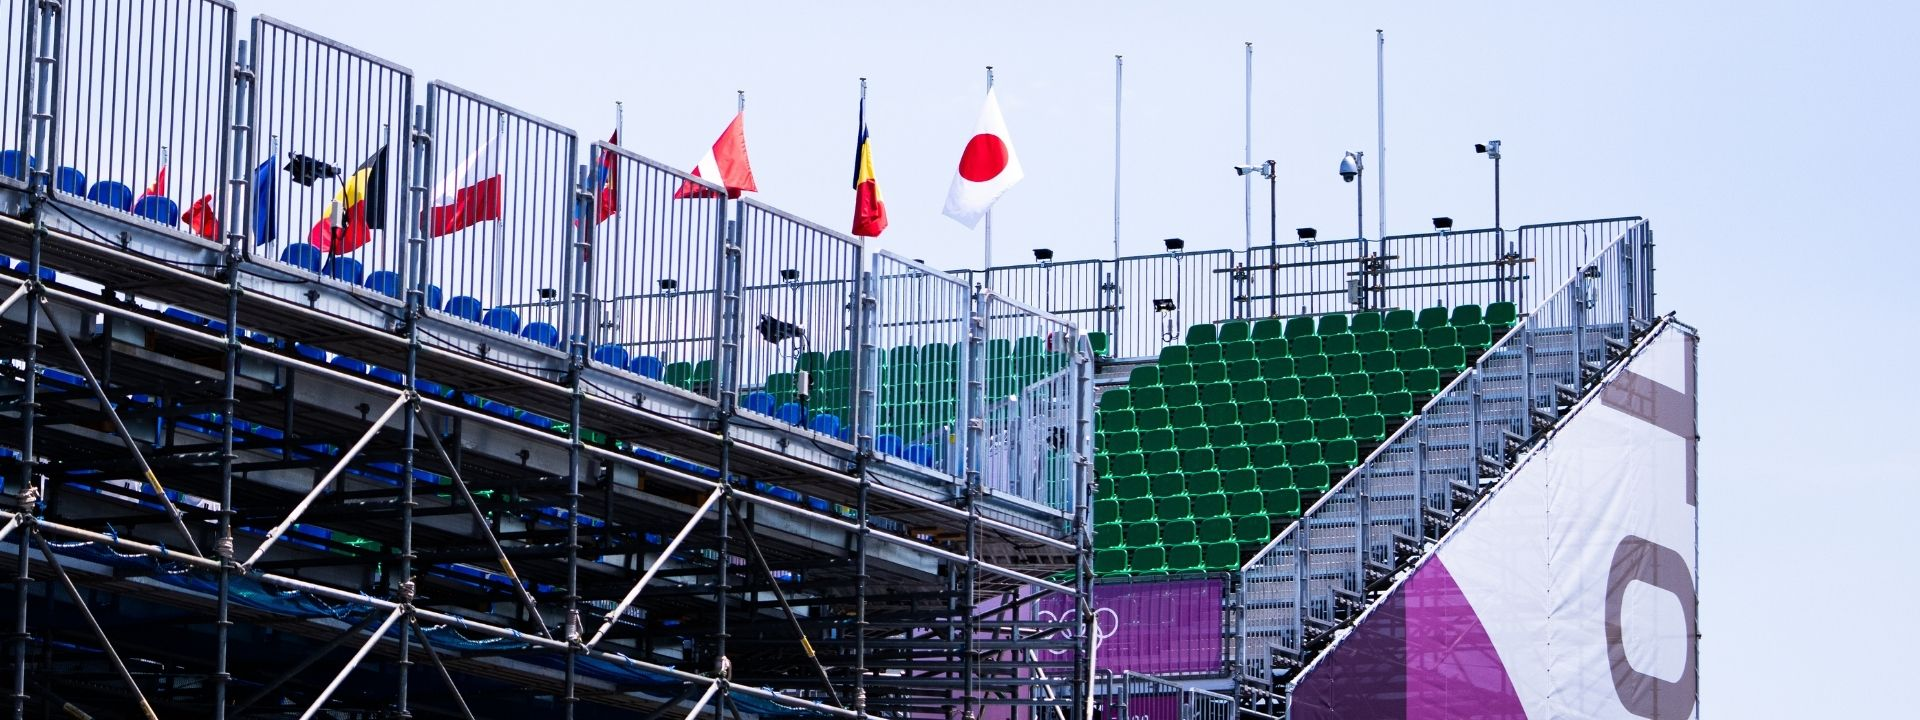 TOGETHER WHILST APART: HOW TOKYO 2020 IS TACKLING A LACK OF SPECTATORS